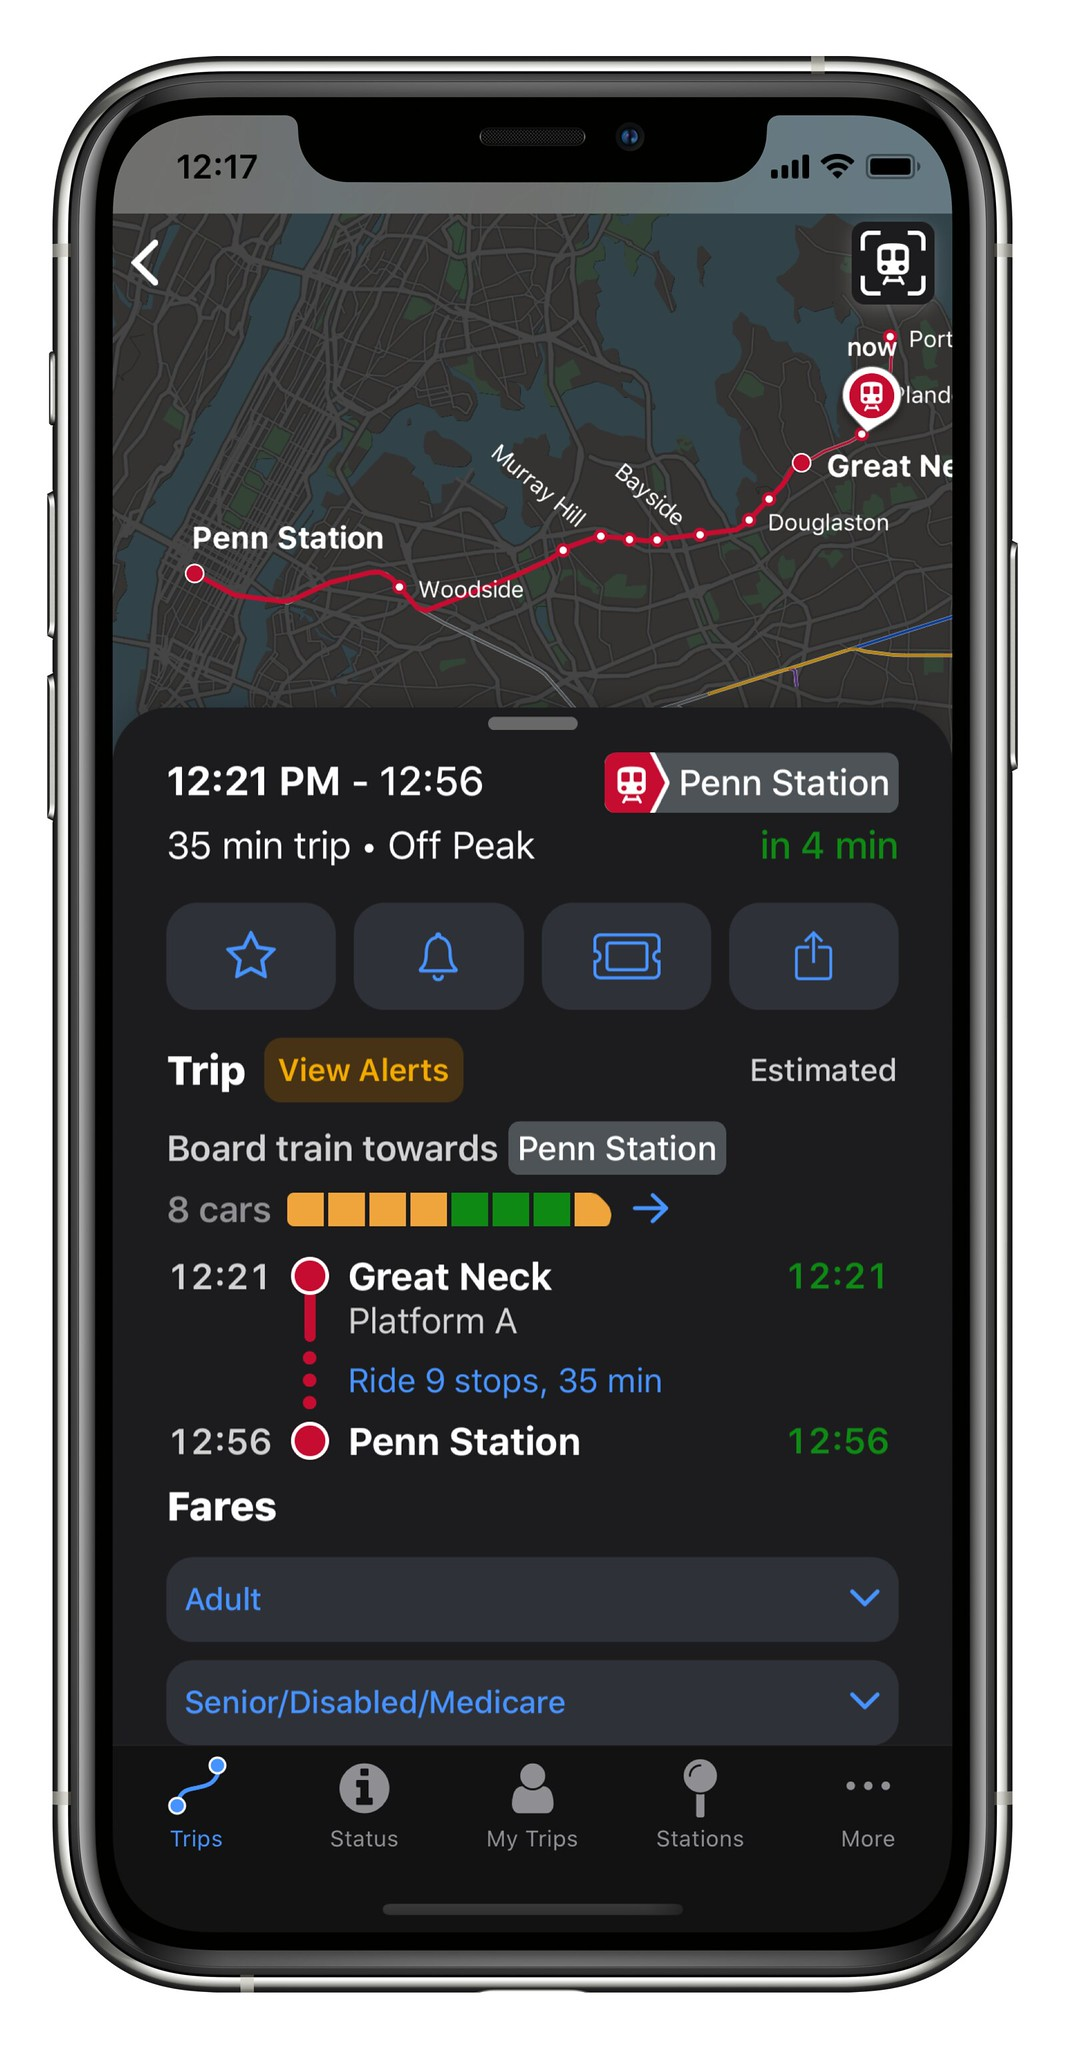 LIRR Updates its TrainTime App With Capacity Tracker